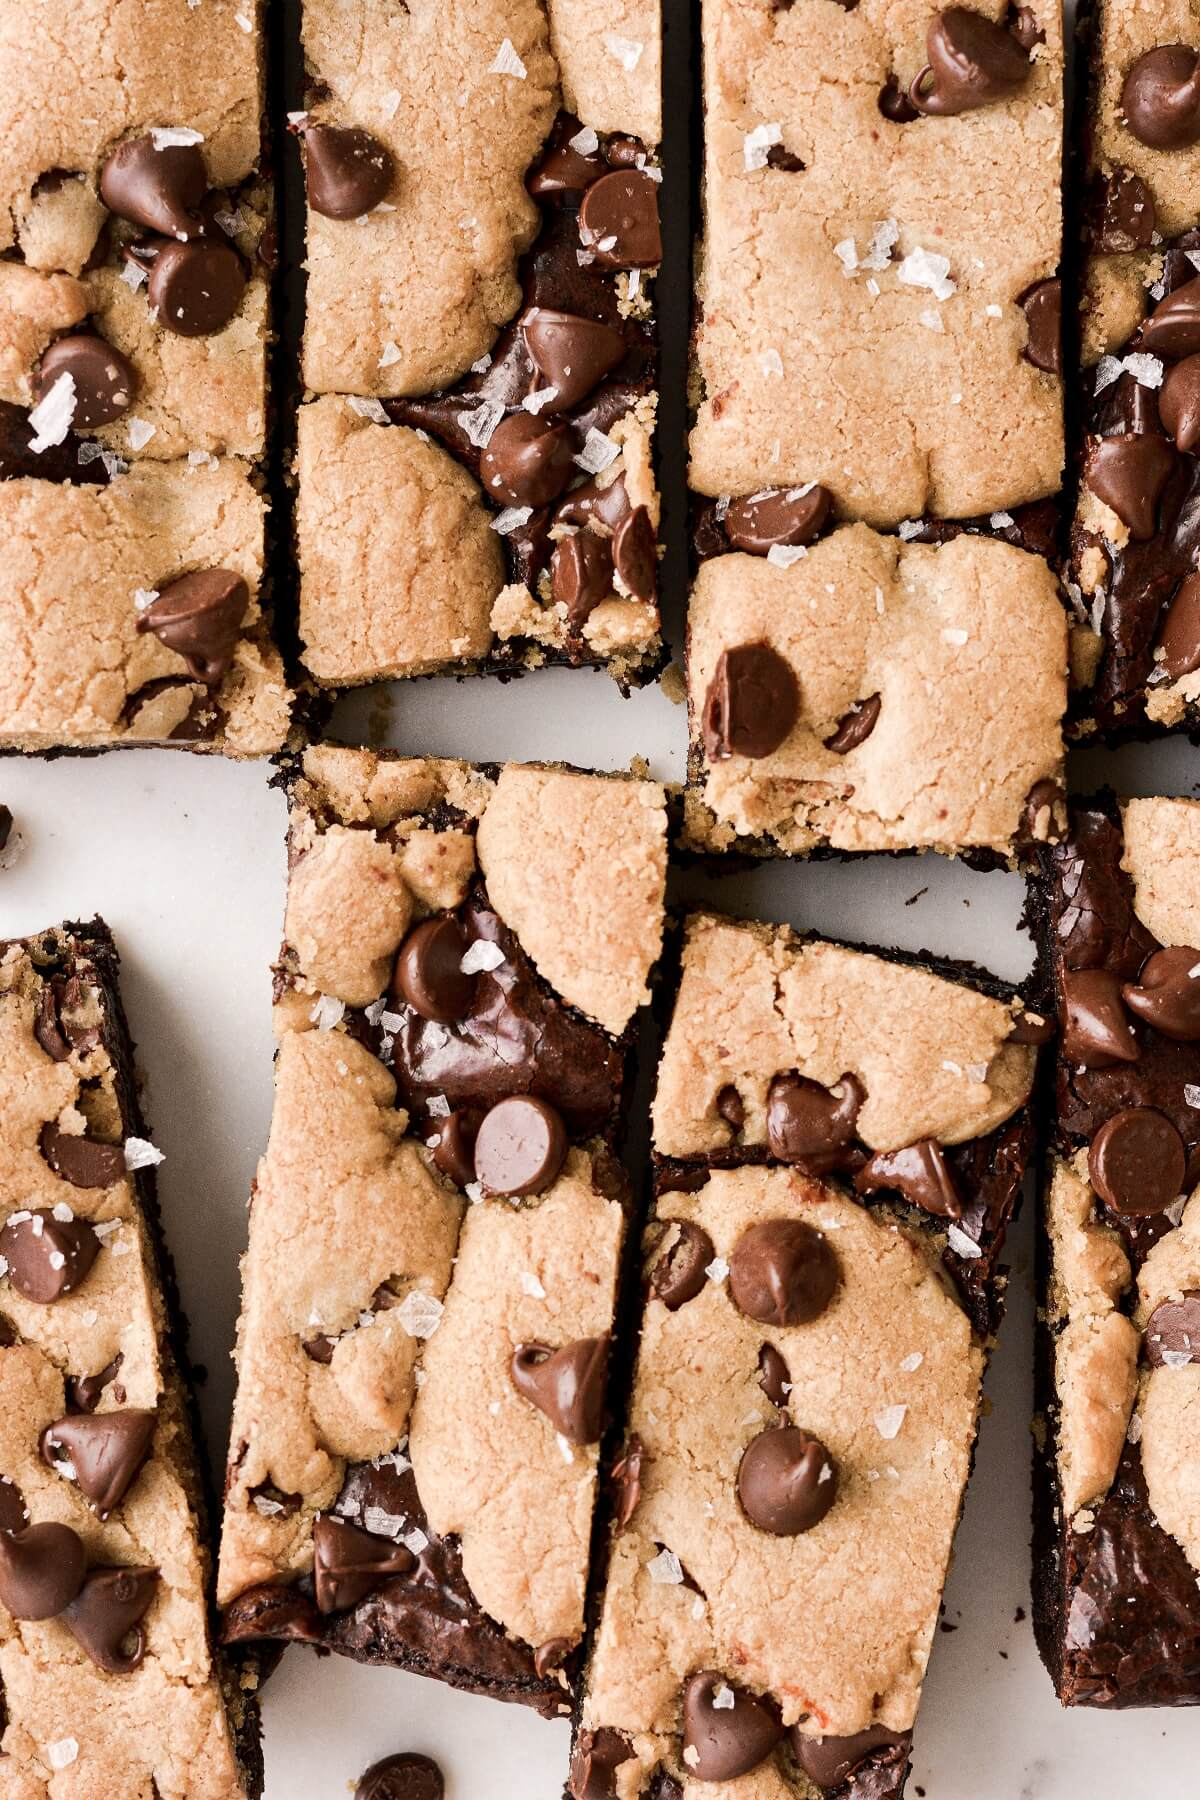 Chocolate chip cookie brownies, sprinkled with salt and cut into bars.